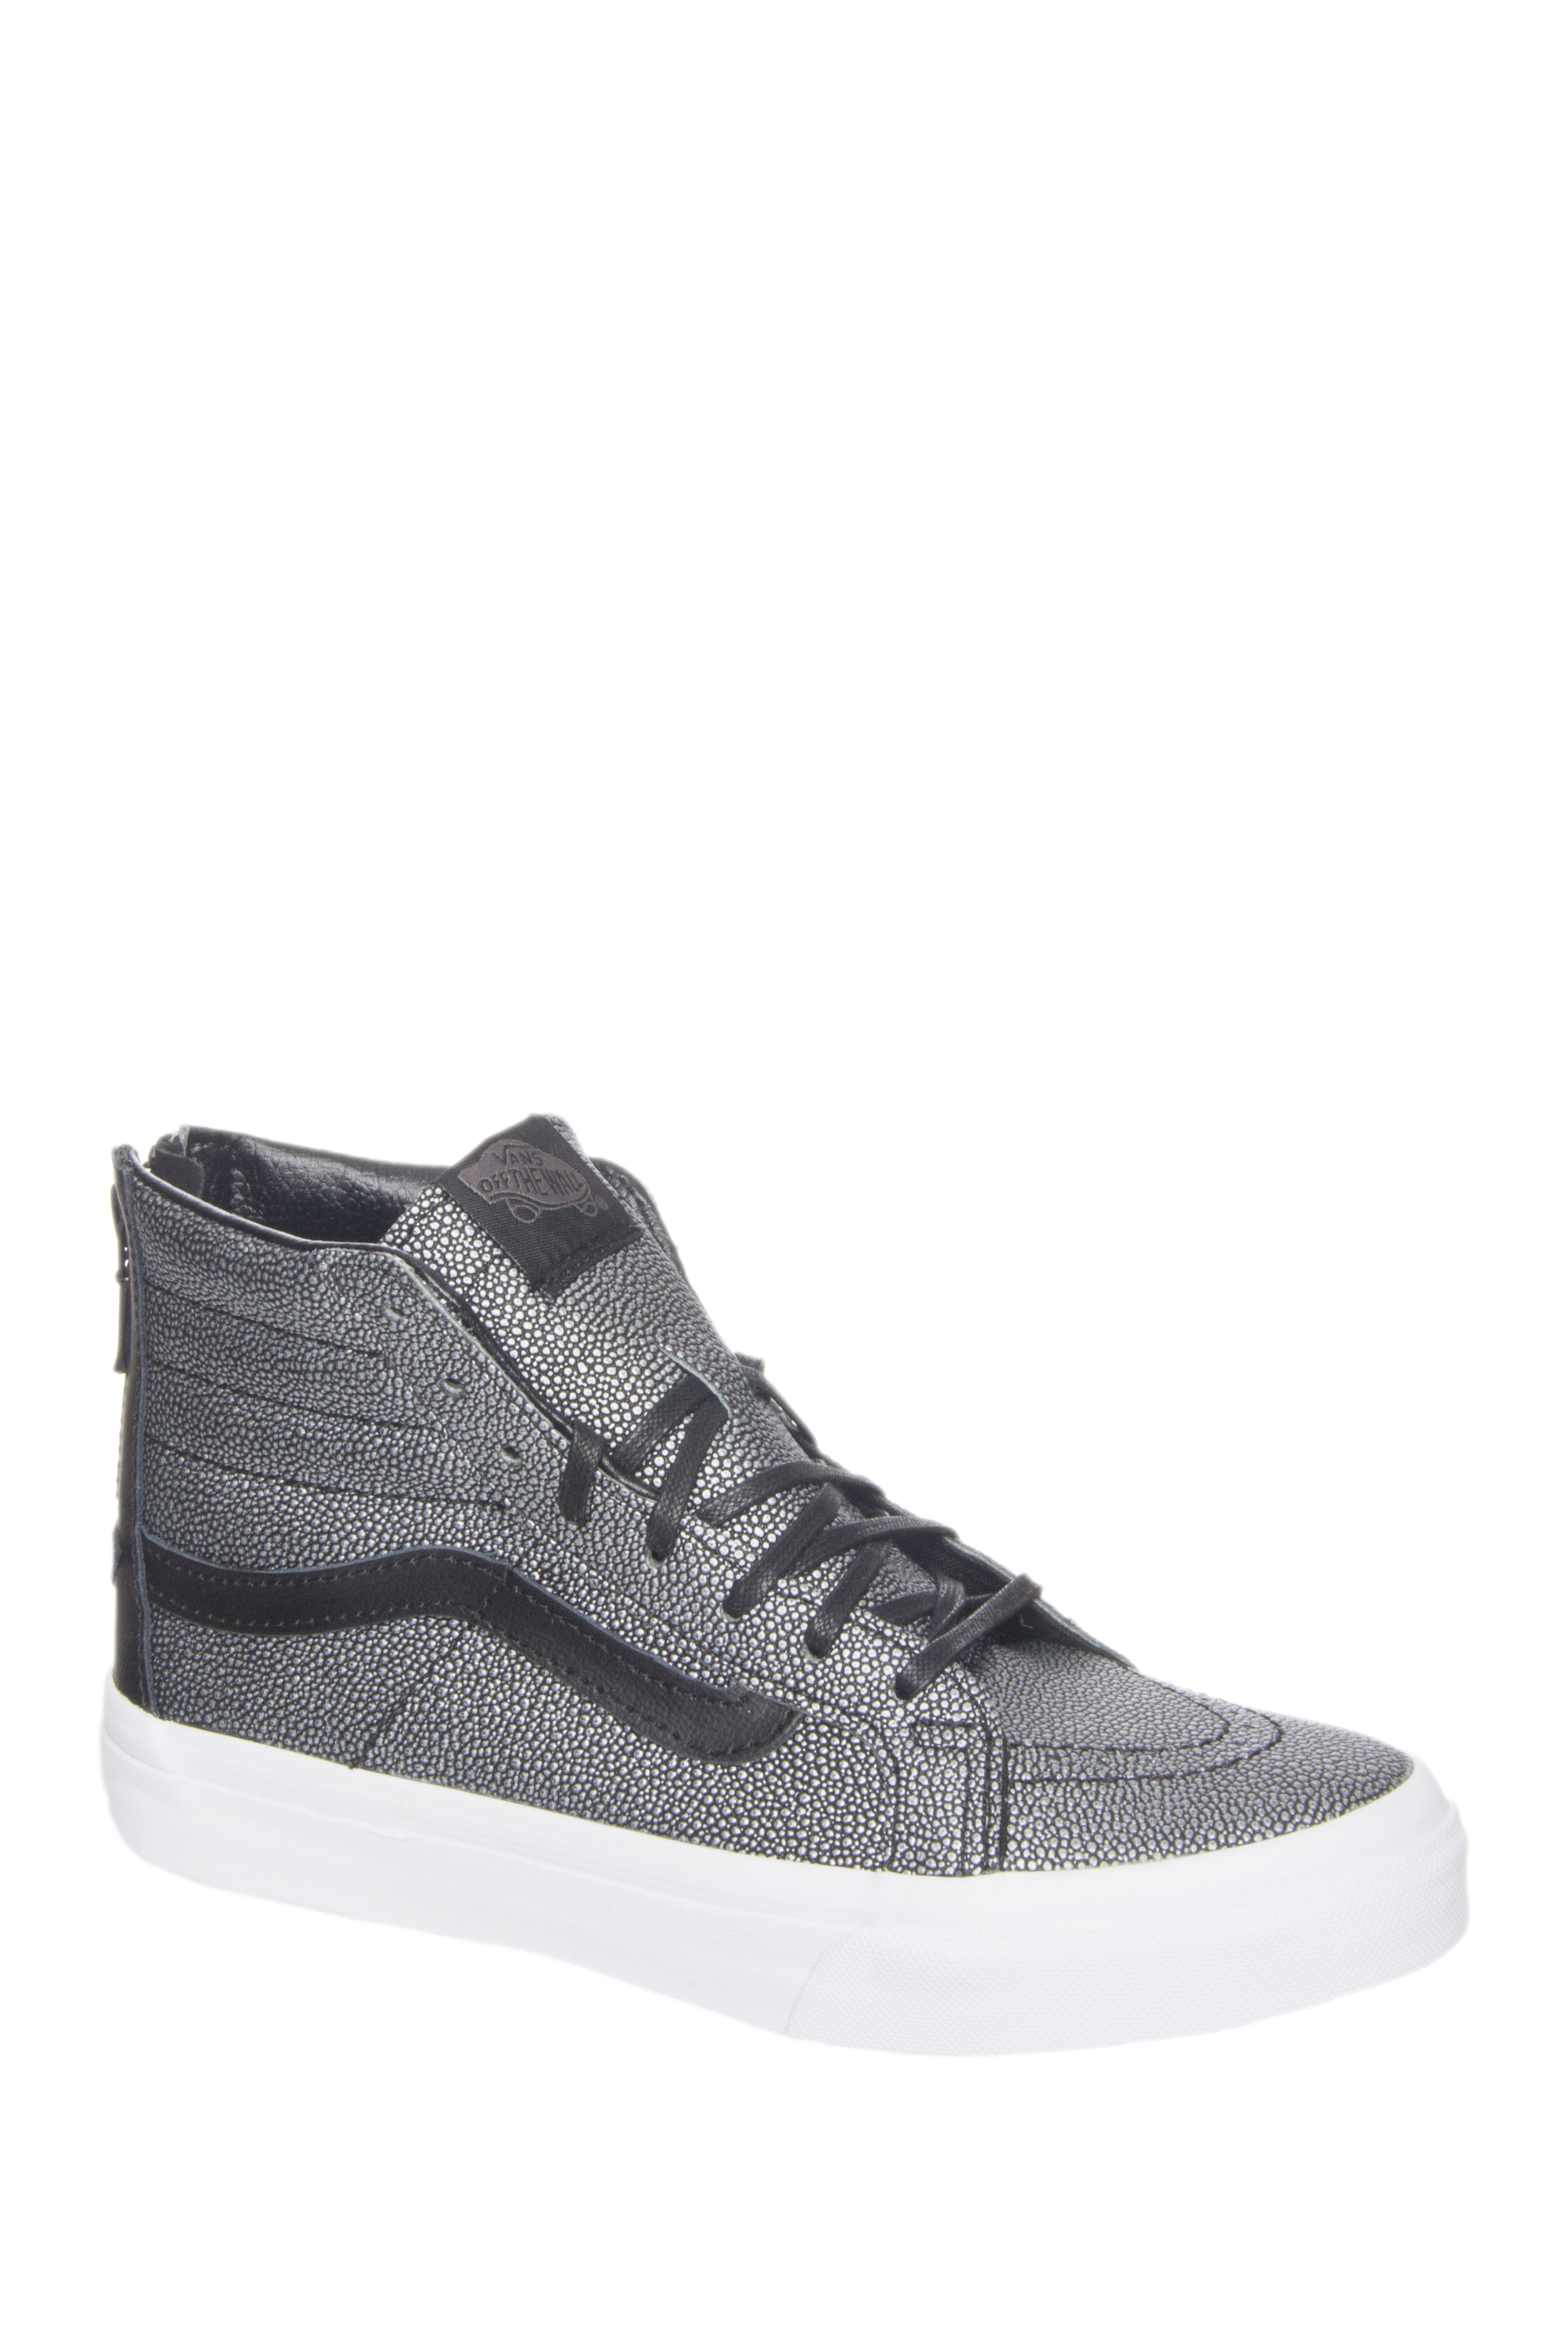 Vans Unisex SK8-Hi-Top Slim Zip Stingray Sneakers - Black